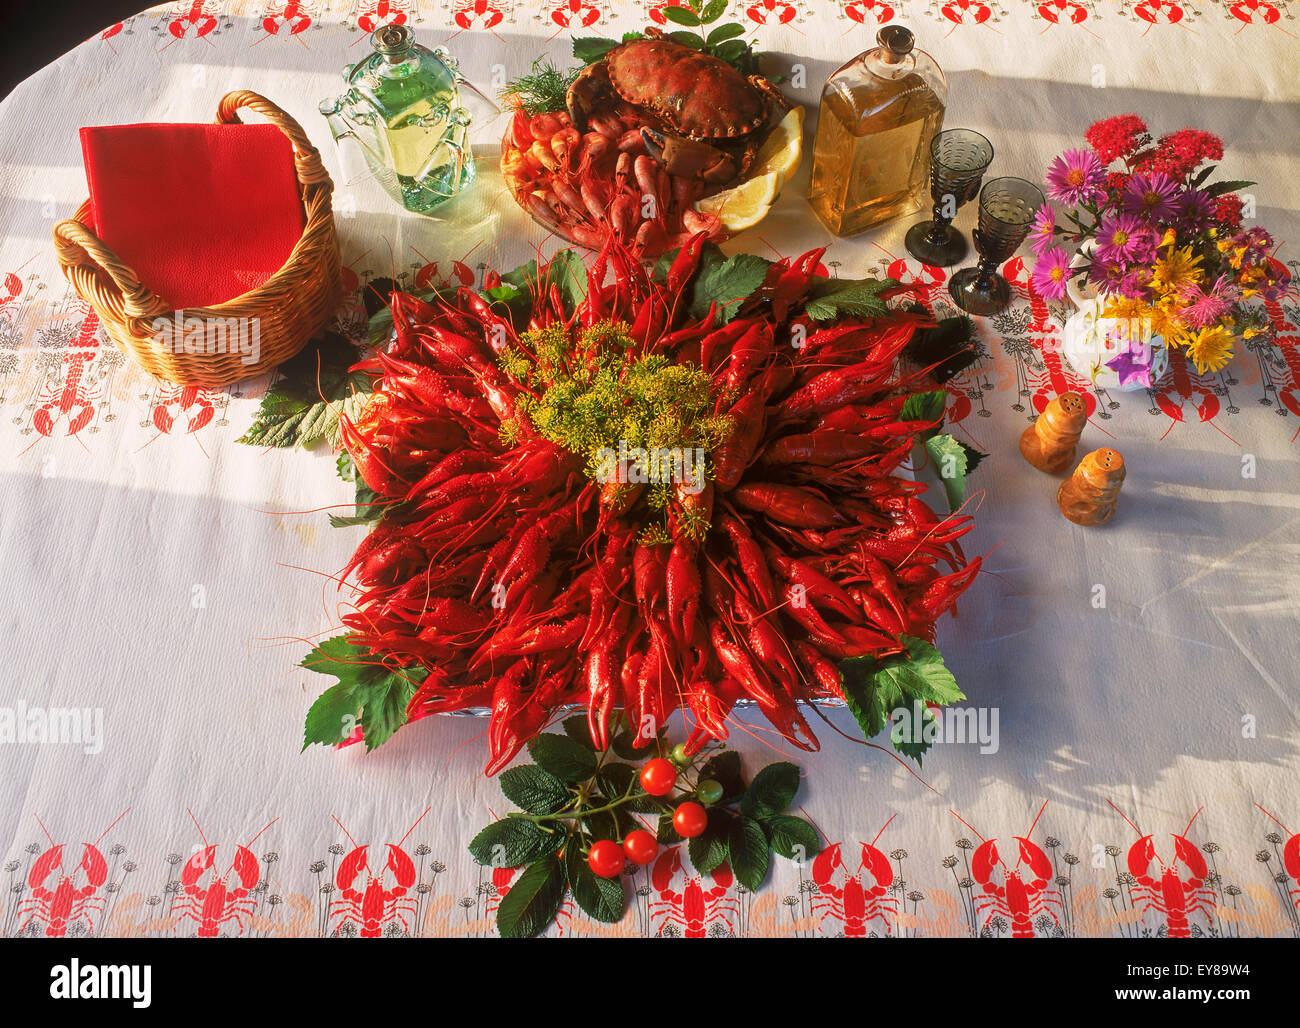 Table setting with plates of fresh crayfish and bread in Sweden - Stock Image